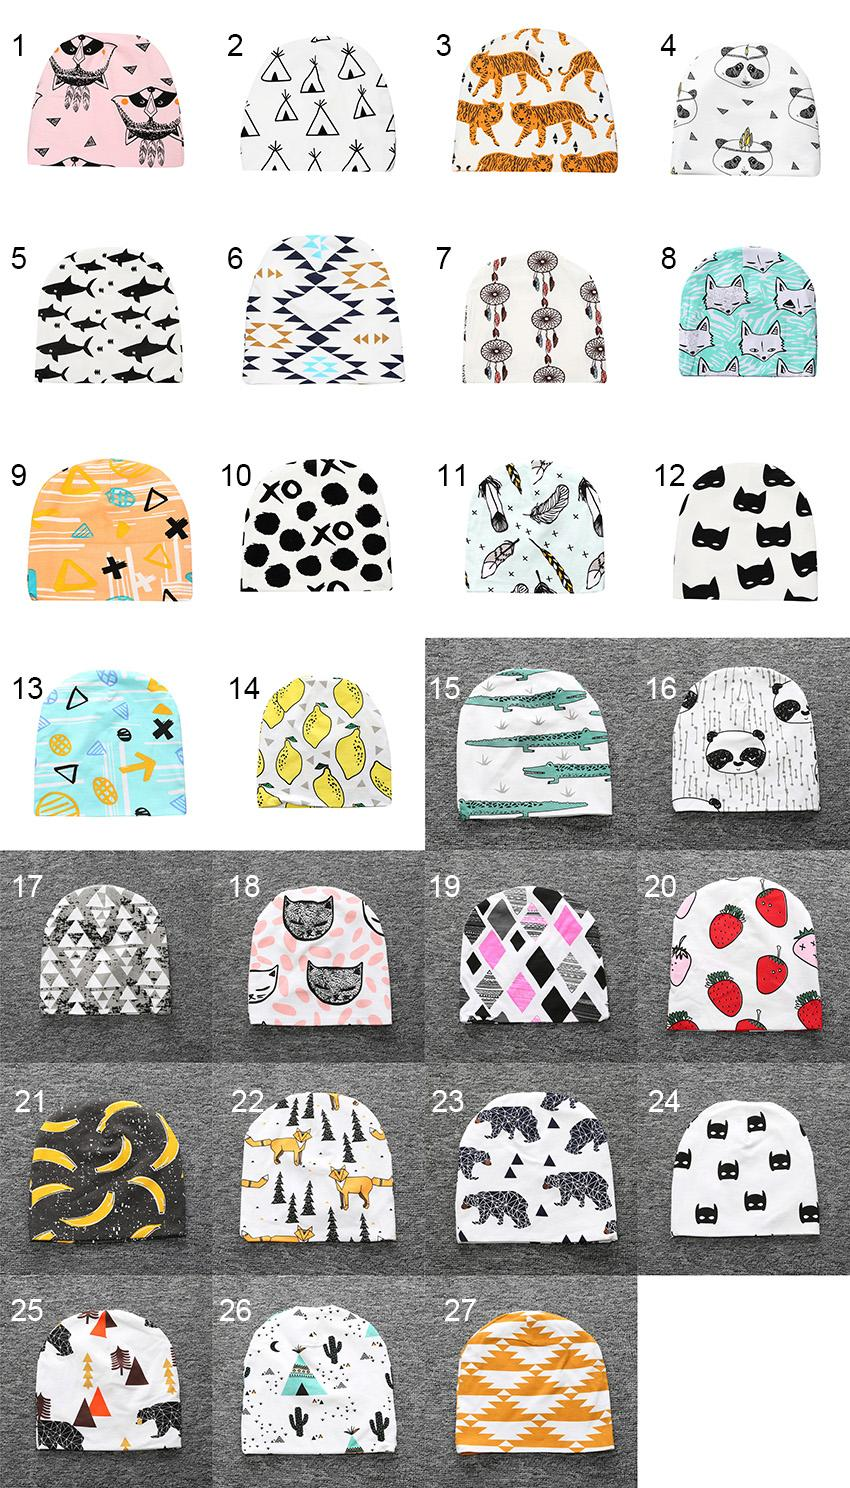 Kids Caps Children's Hats 27 Designs Spring Autumn Fitted Hat Cartoon Printed Hats Cotton Sombreros Chapeau for Boy Girl 0-3T